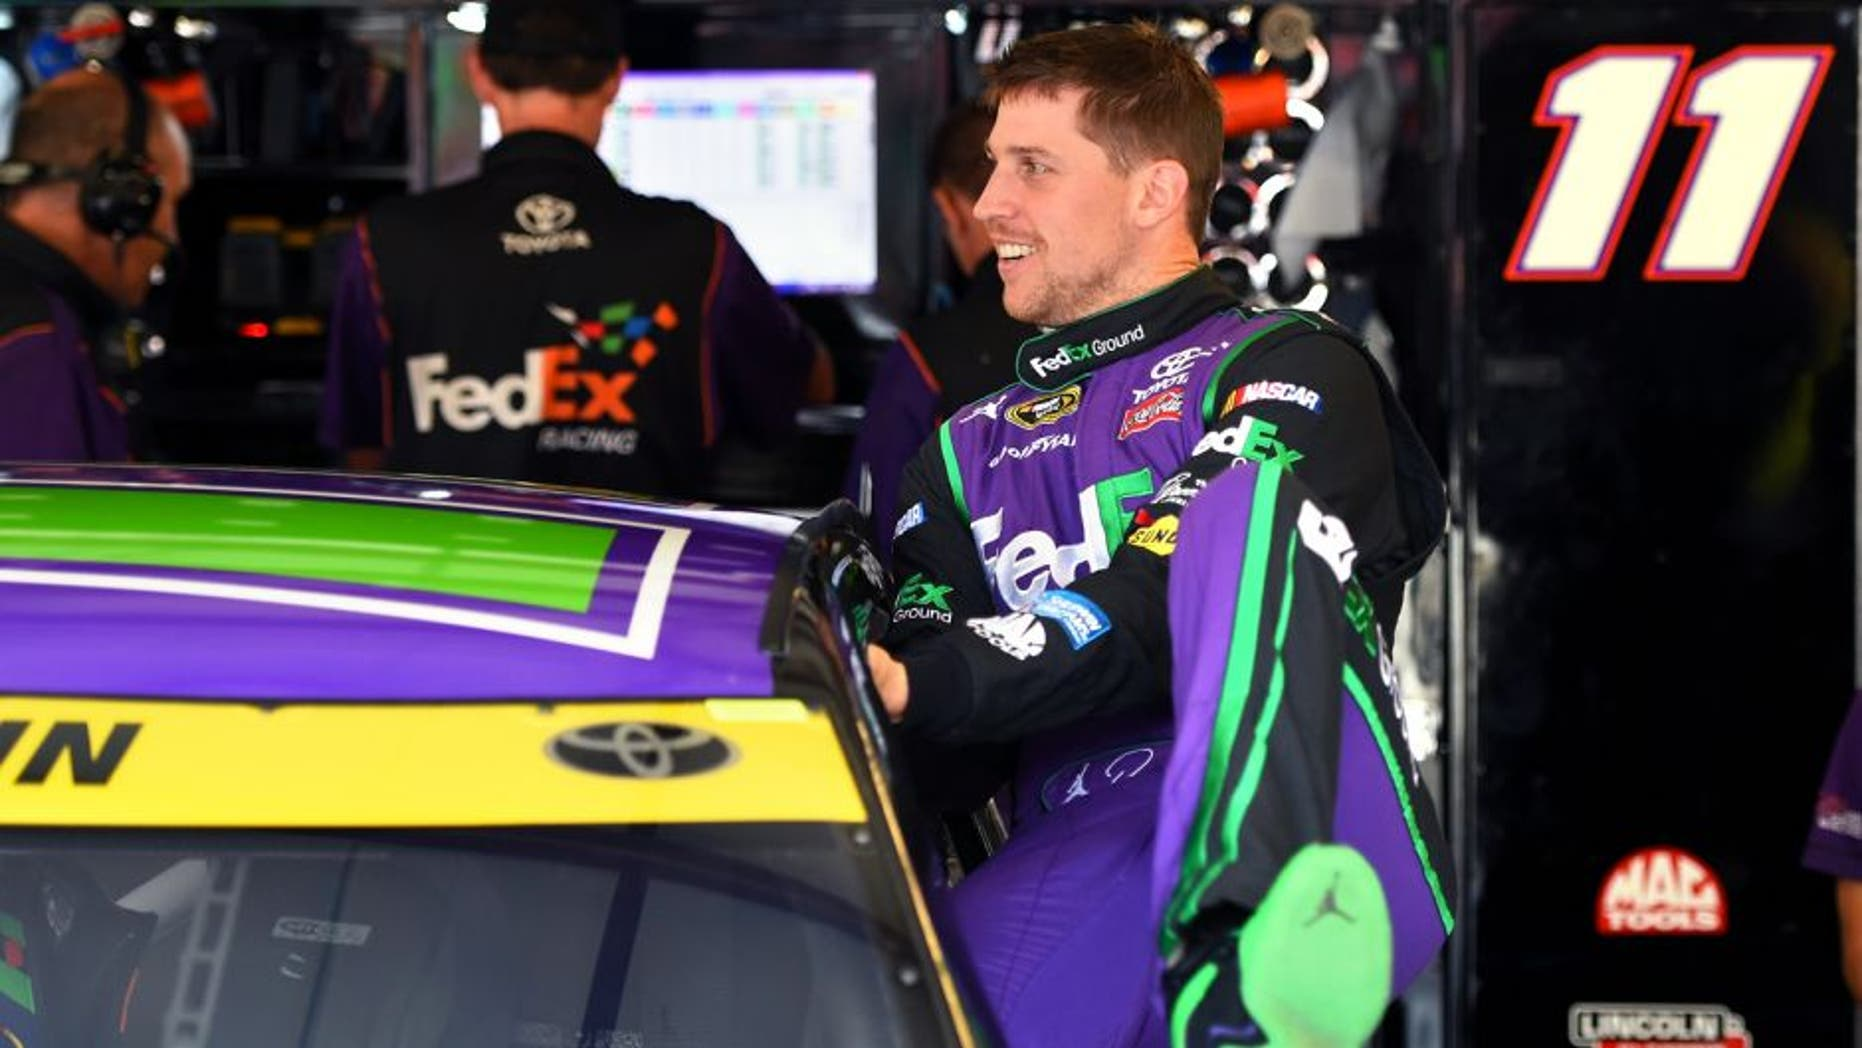 JOLIET, IL - SEPTEMBER 18: Denny Hamlin, driver of the #11 FedEx Ground Toyota, climbs into his car before practice for the NASCAR Sprint Cup Series myAFibRisk.com 400 at Chicagoland Speedway on September 18, 2015 in Joliet, Illinois. (Photo by Josh Hedges/Getty Images)